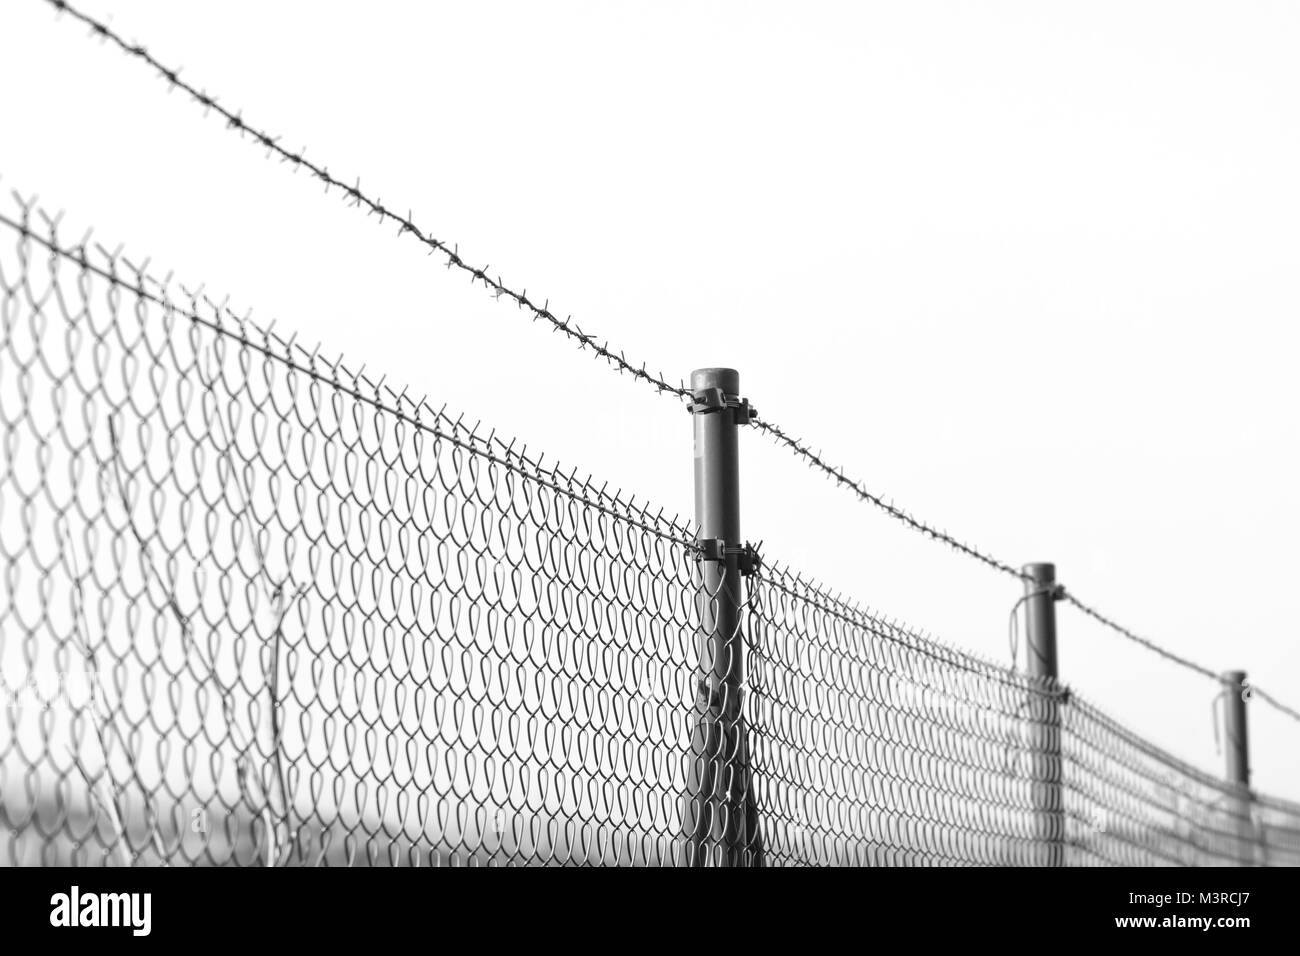 Barrier Barbed Wire Fence Stock Photos & Barrier Barbed Wire Fence ...